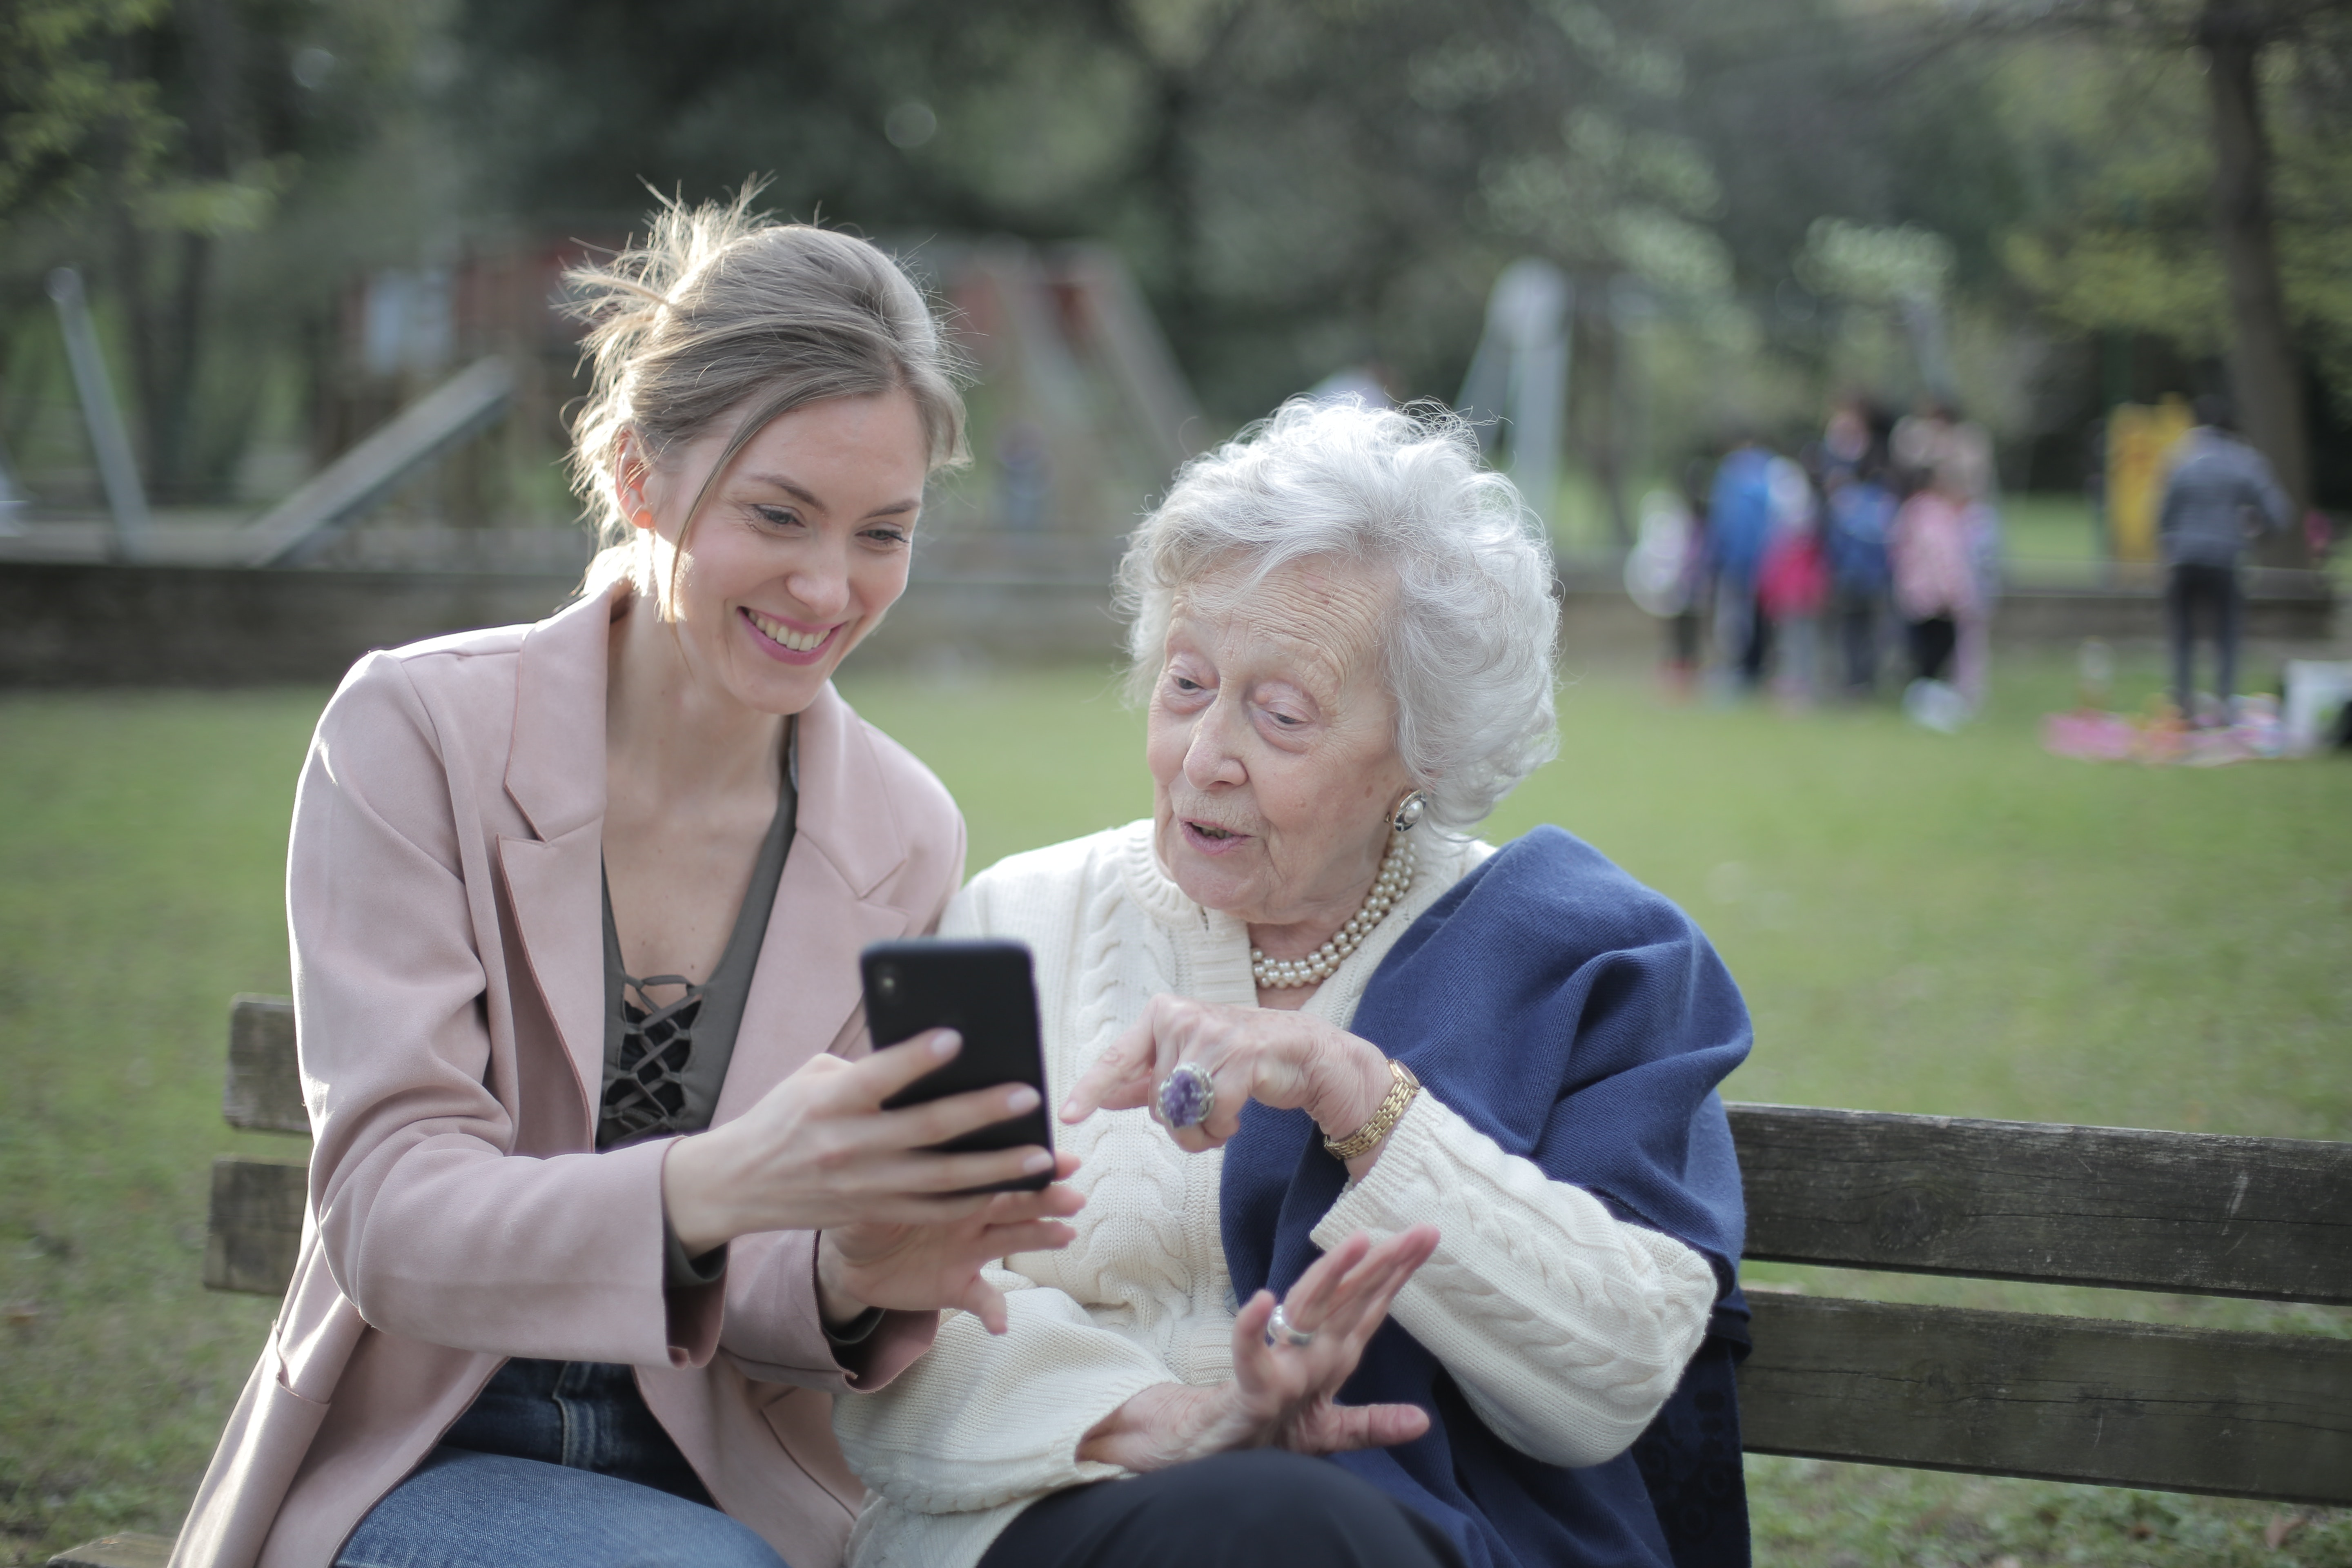 cheerful-senior-mother-and-adult-daughter-using-smartphone-3791664.jpg